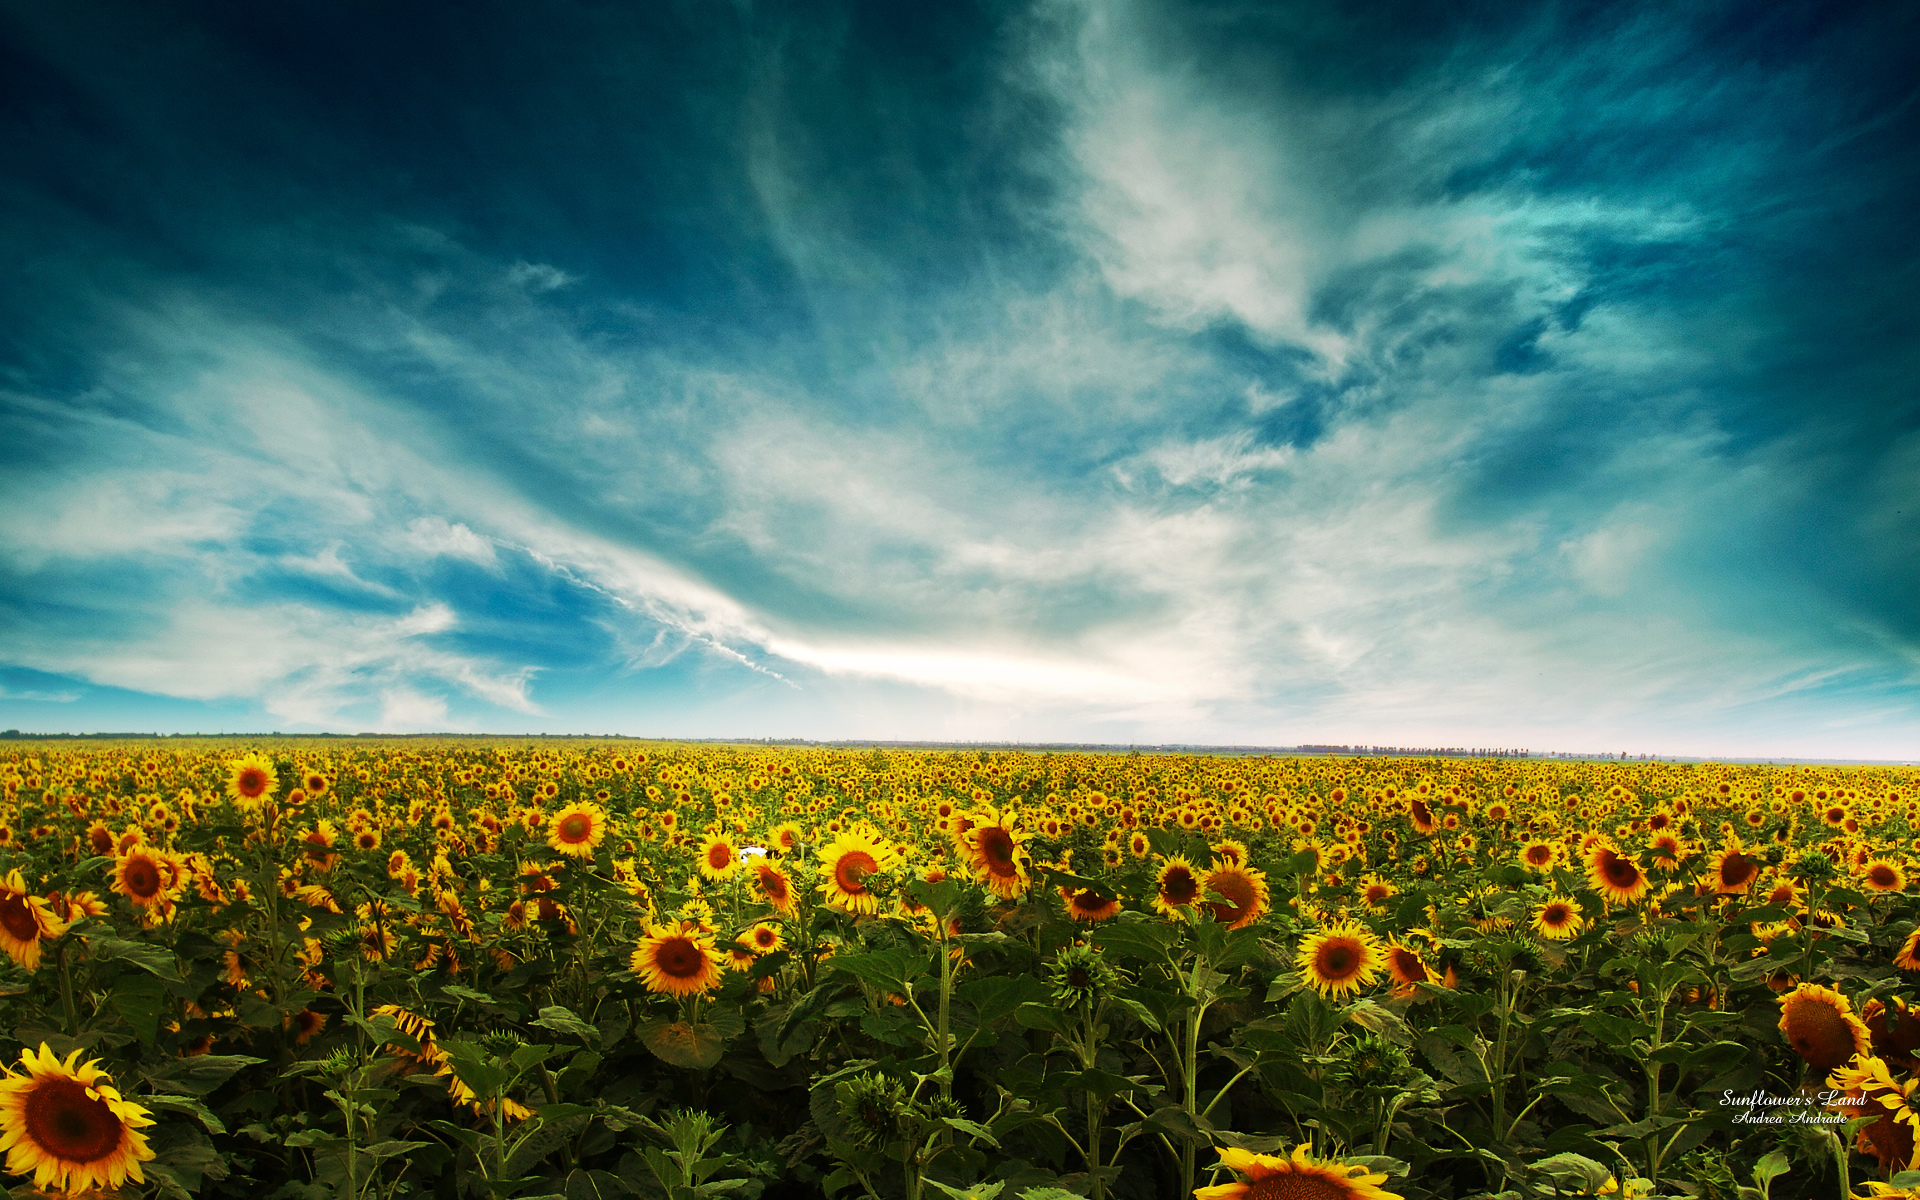 Wallpaper Of Natural Scenery: Sunflowers On A Vast Land